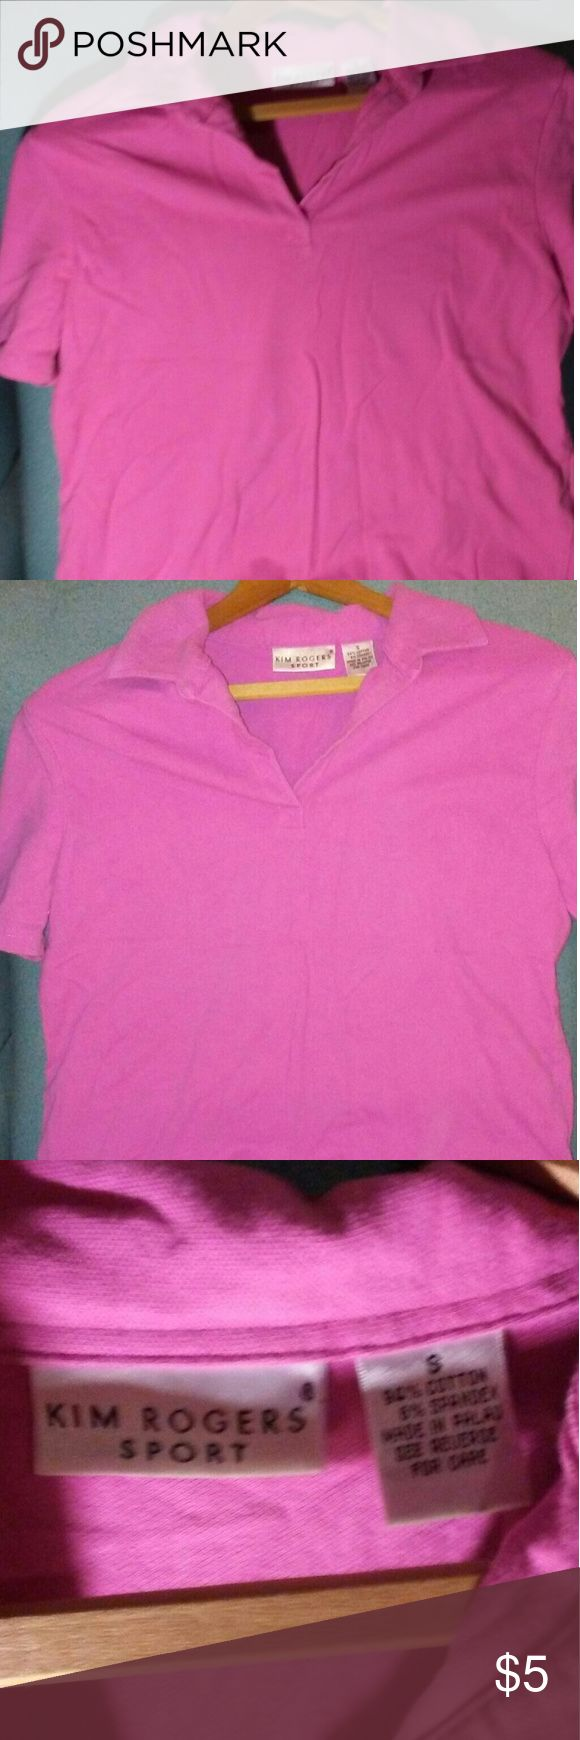 Kim Rogers Sport polo Kim Rogers Sport pink short sleeve polo shirt size small gently loved Kim Rogers Tops Tees - Short Sleeve